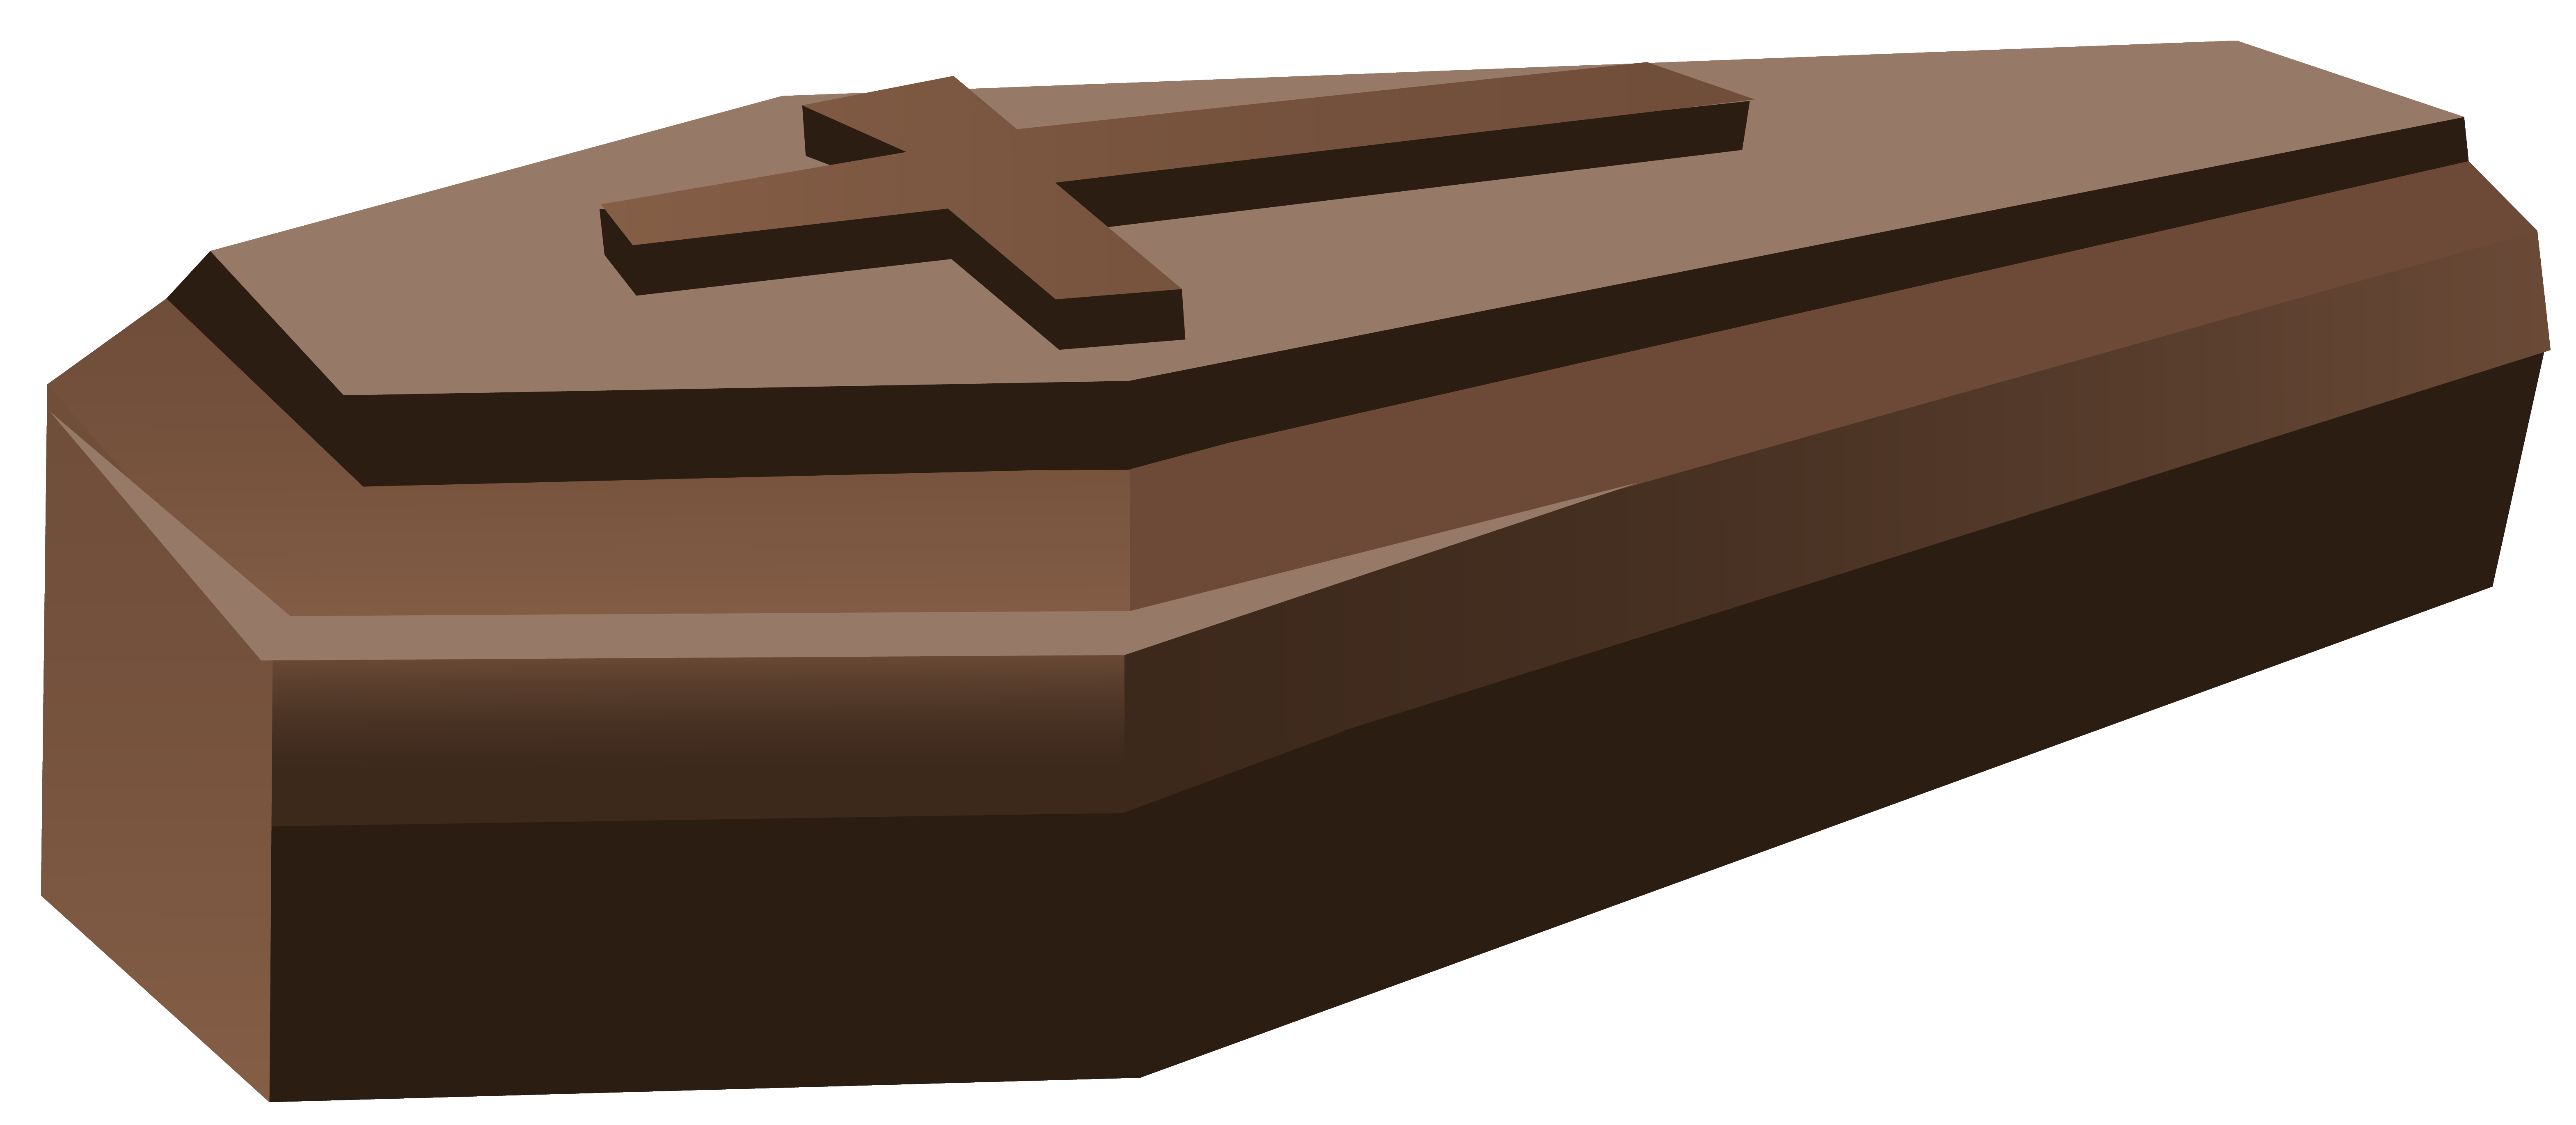 Coffin clipart png. Brown image gallery yopriceville